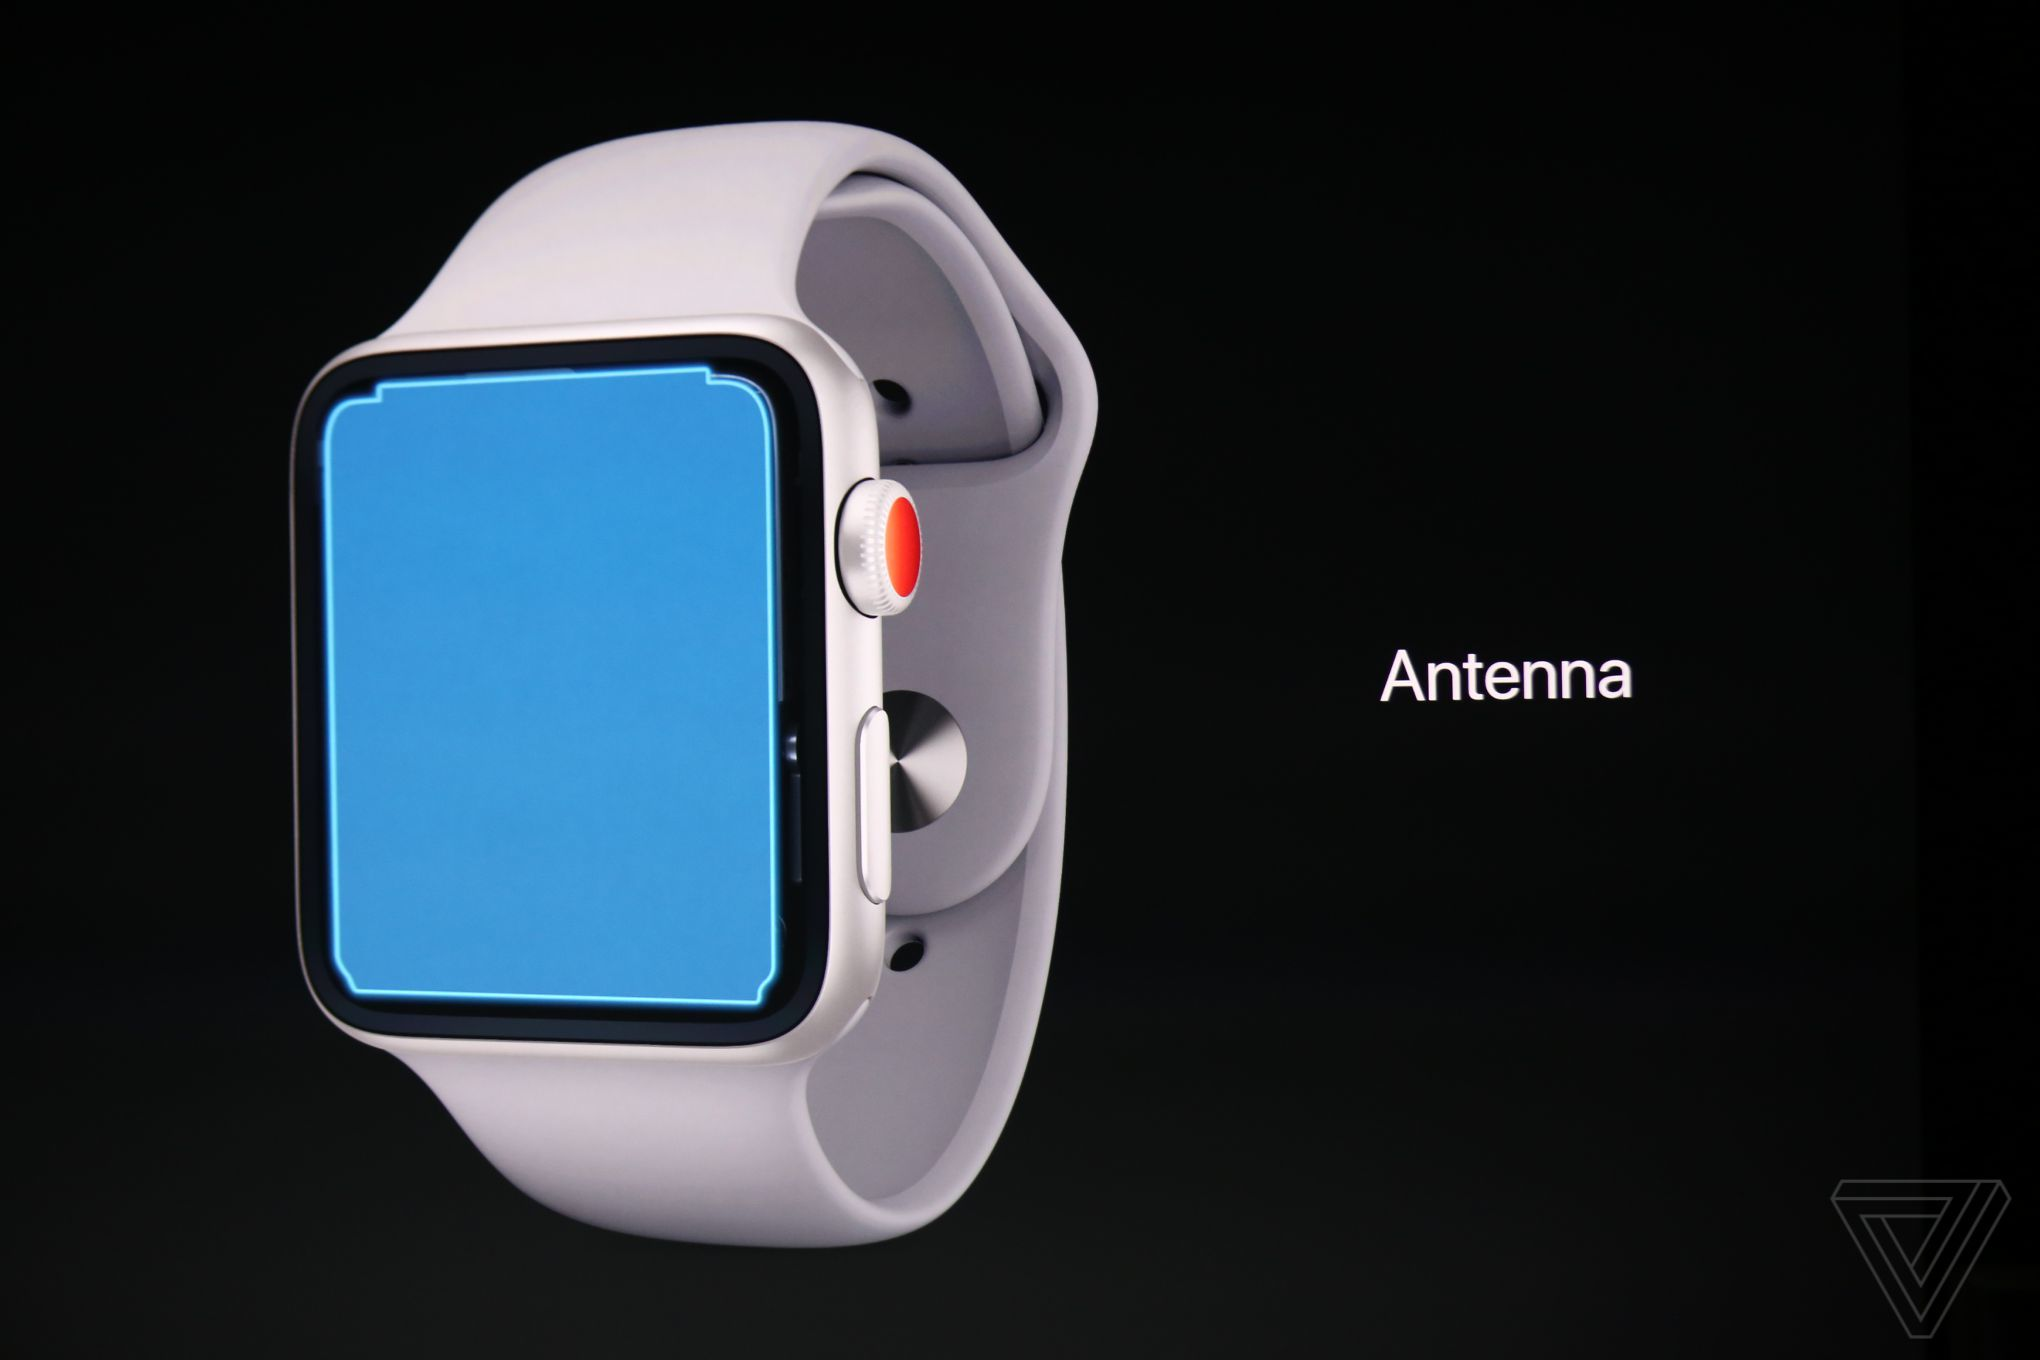 New Apple Watch Series 3 announced with LTE - The Verge